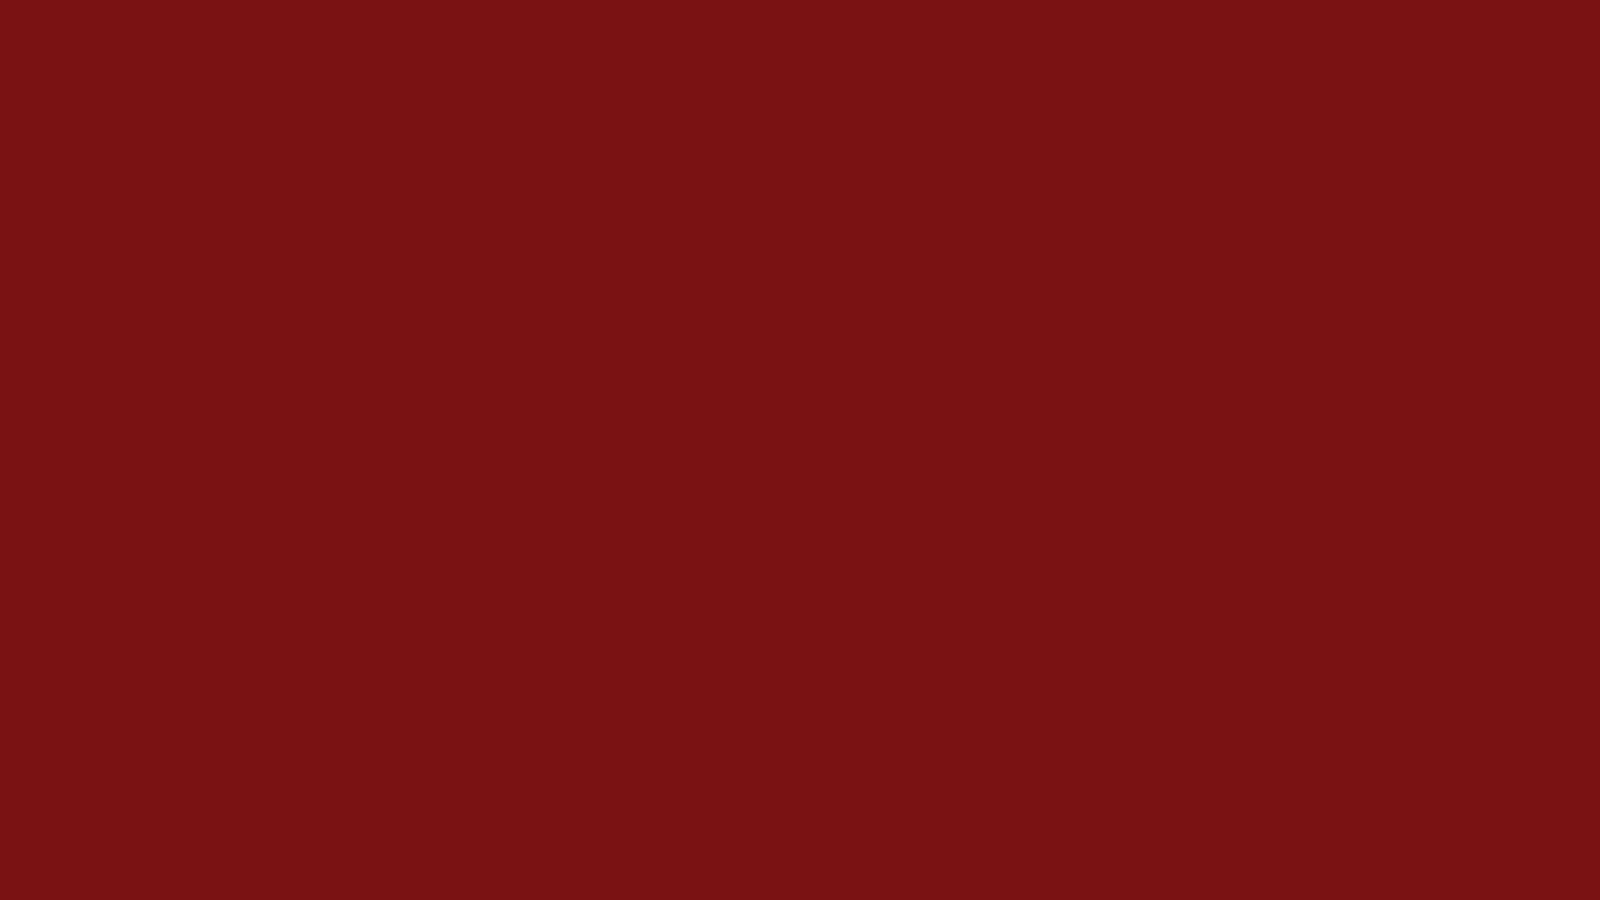 1600x900 UP Maroon Solid Color Background